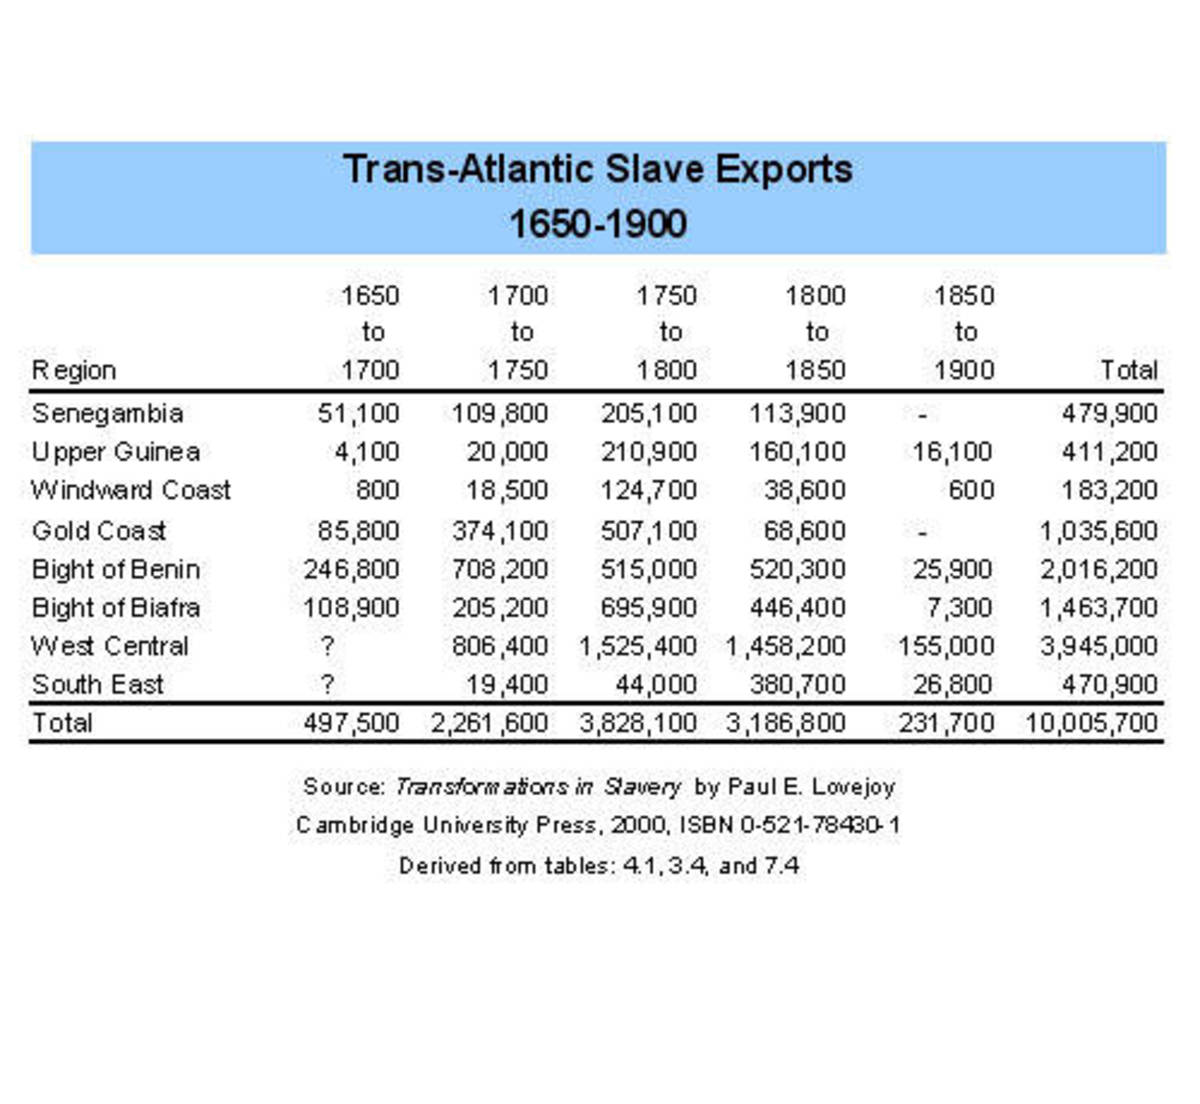 Trans-Atlantic Slave Exports by Region and Era